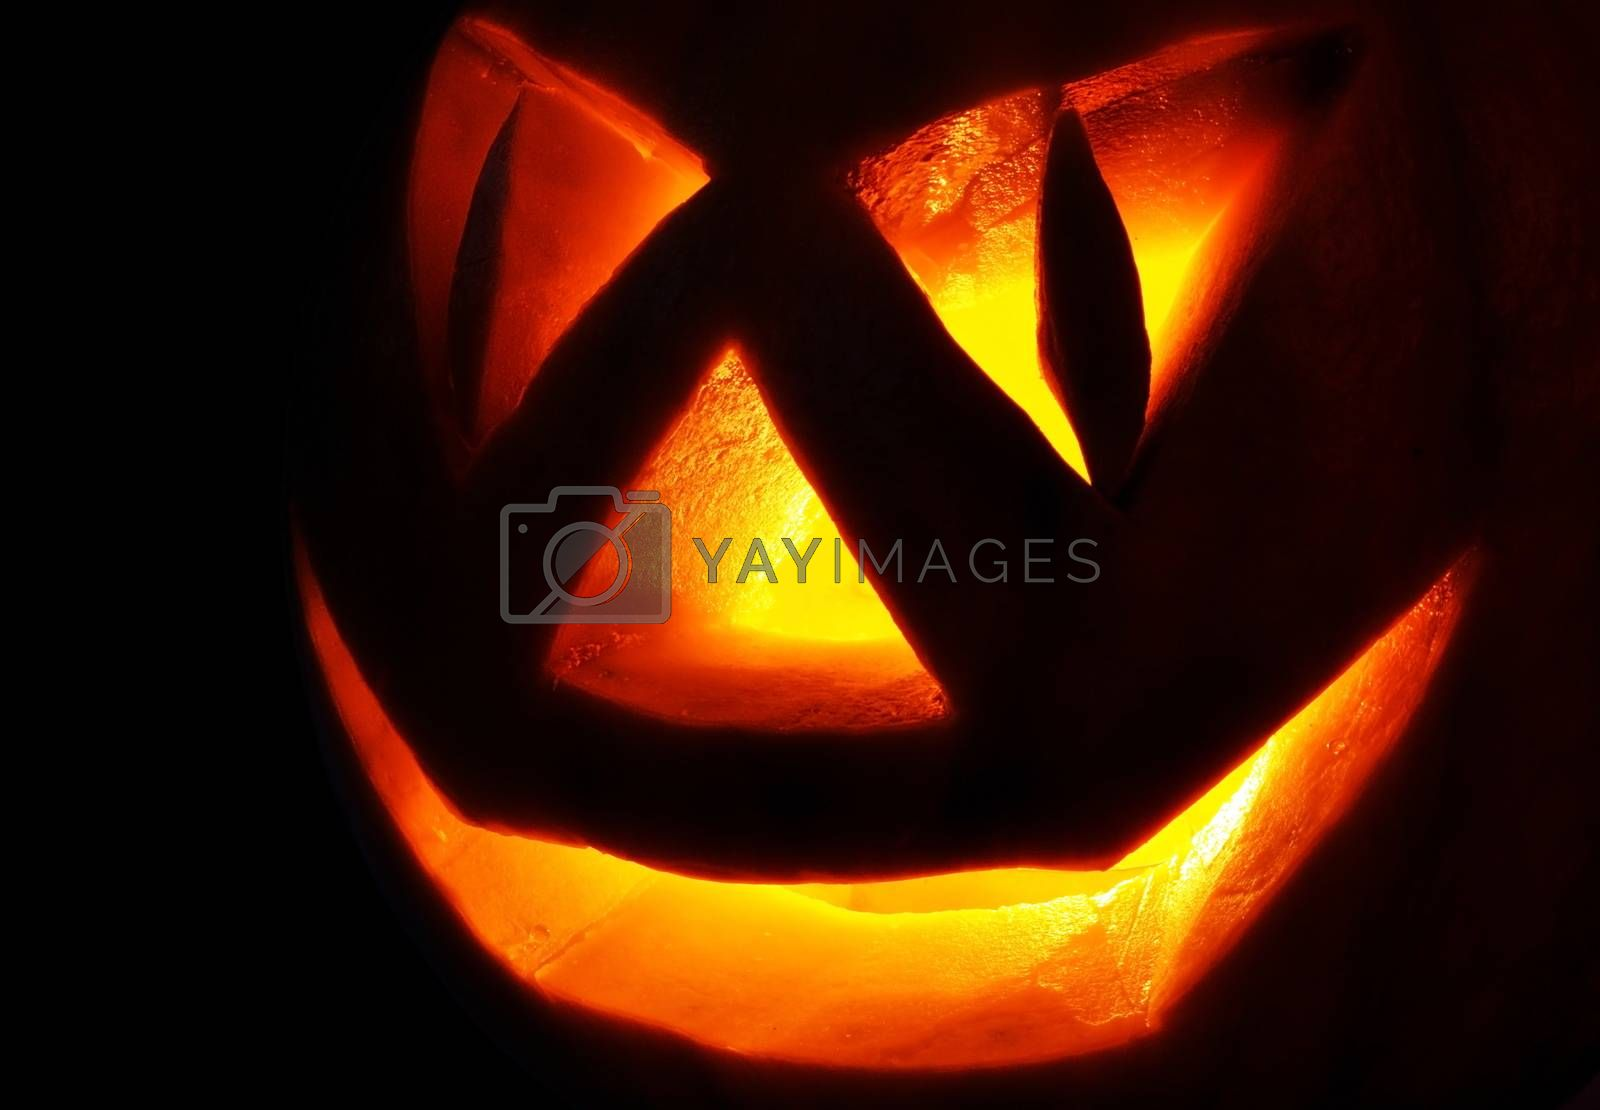 Royalty free image of Jack O Lantern In the dark by alexcoolok